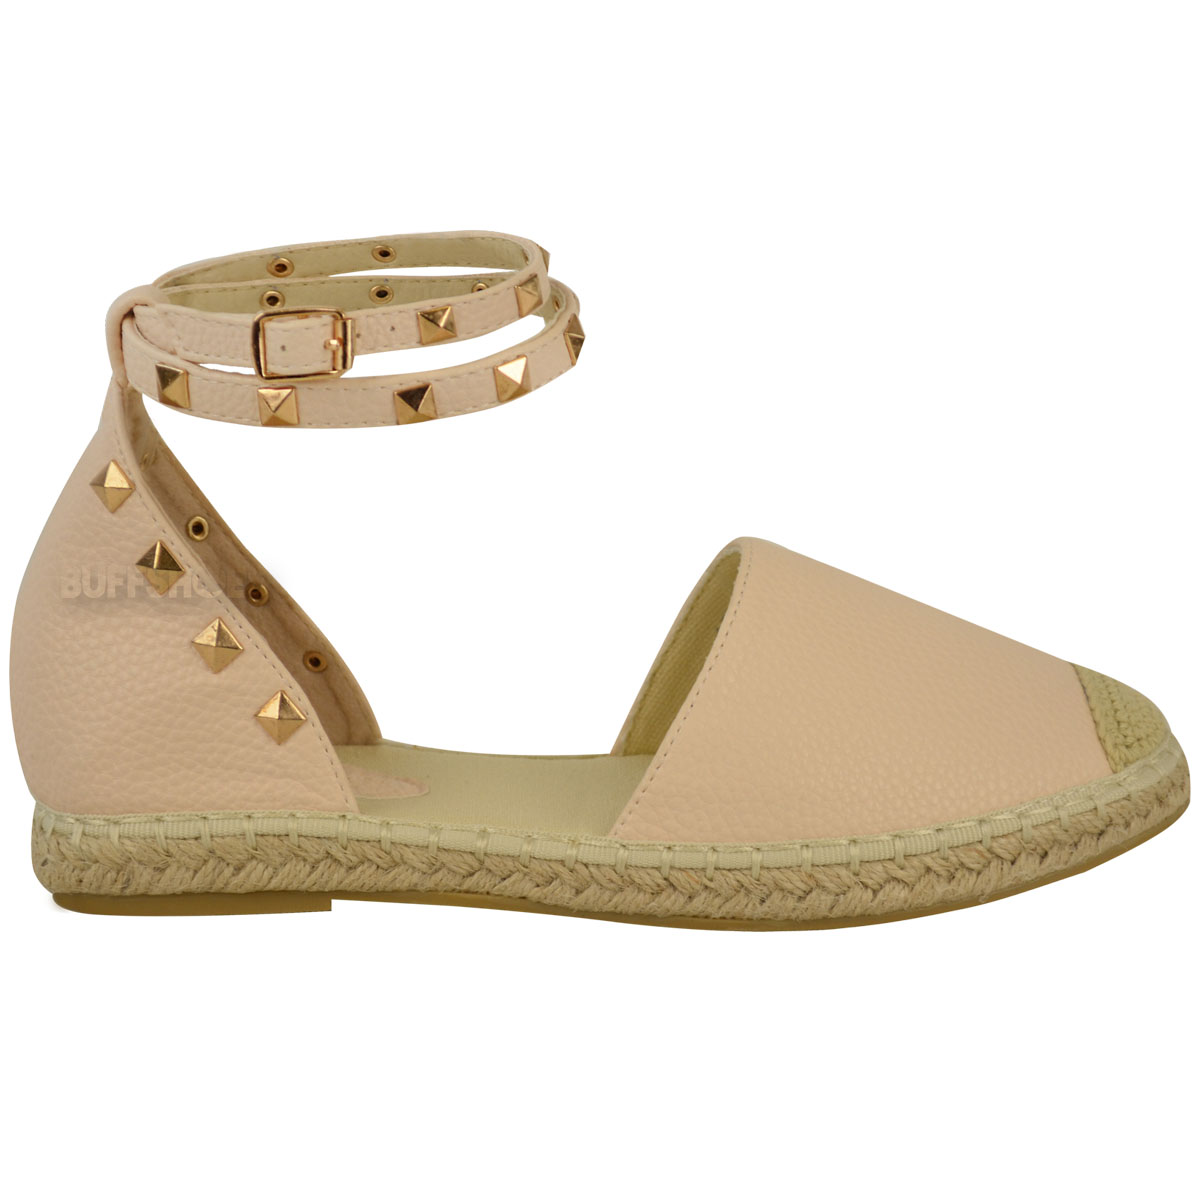 Womens Ladies Espadrilles Ankle Strappy Flat Summer